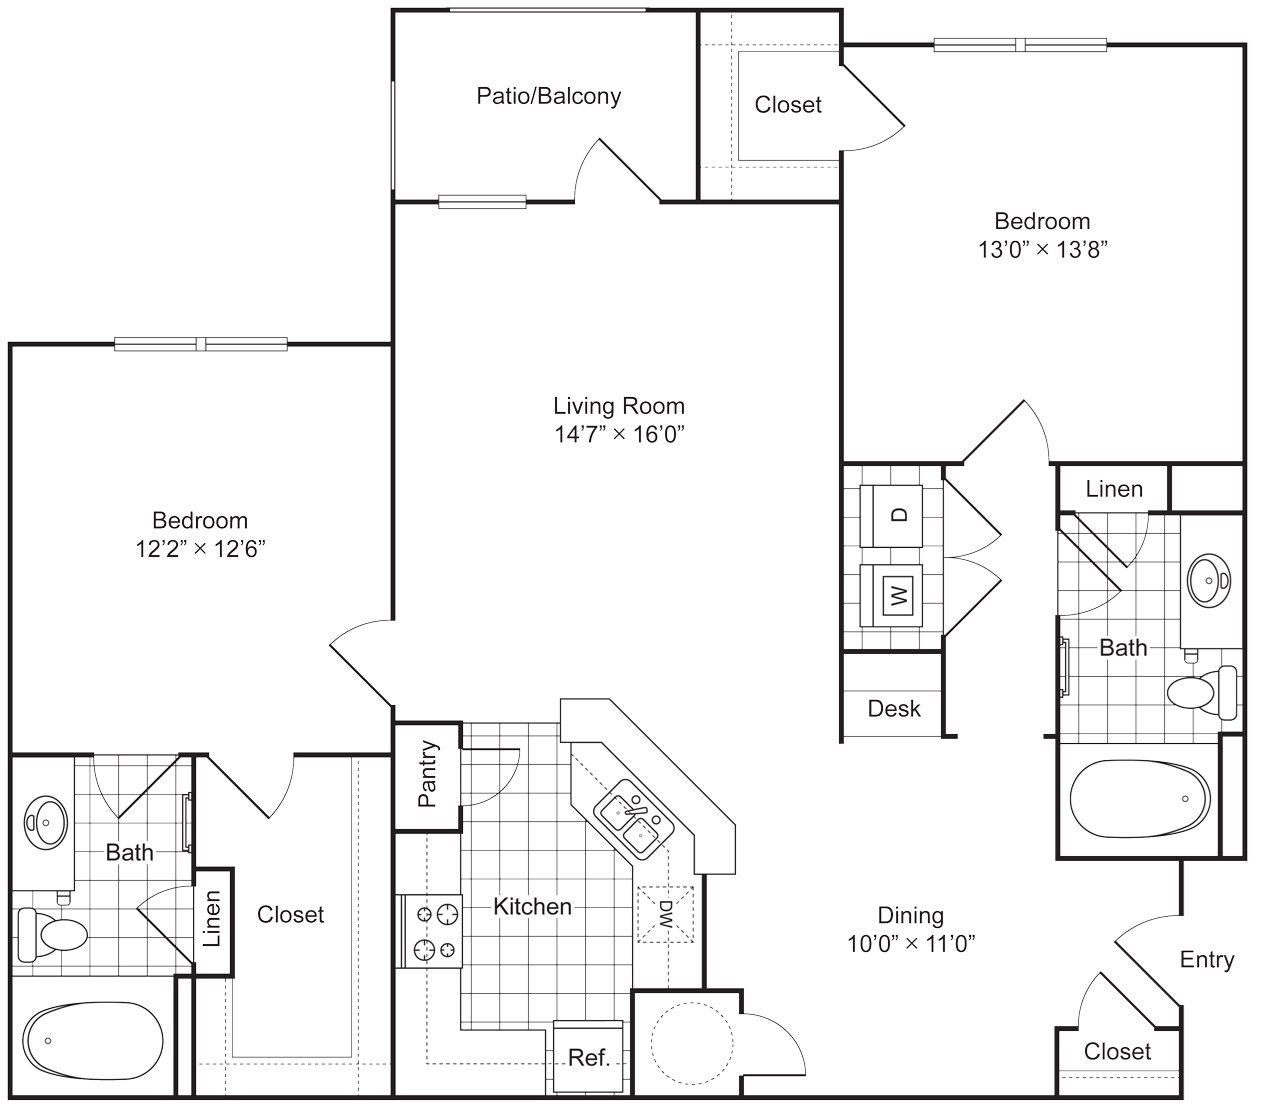 2 Bedroom 2 Bath 1186 sqft (B1) Floor Plan 3